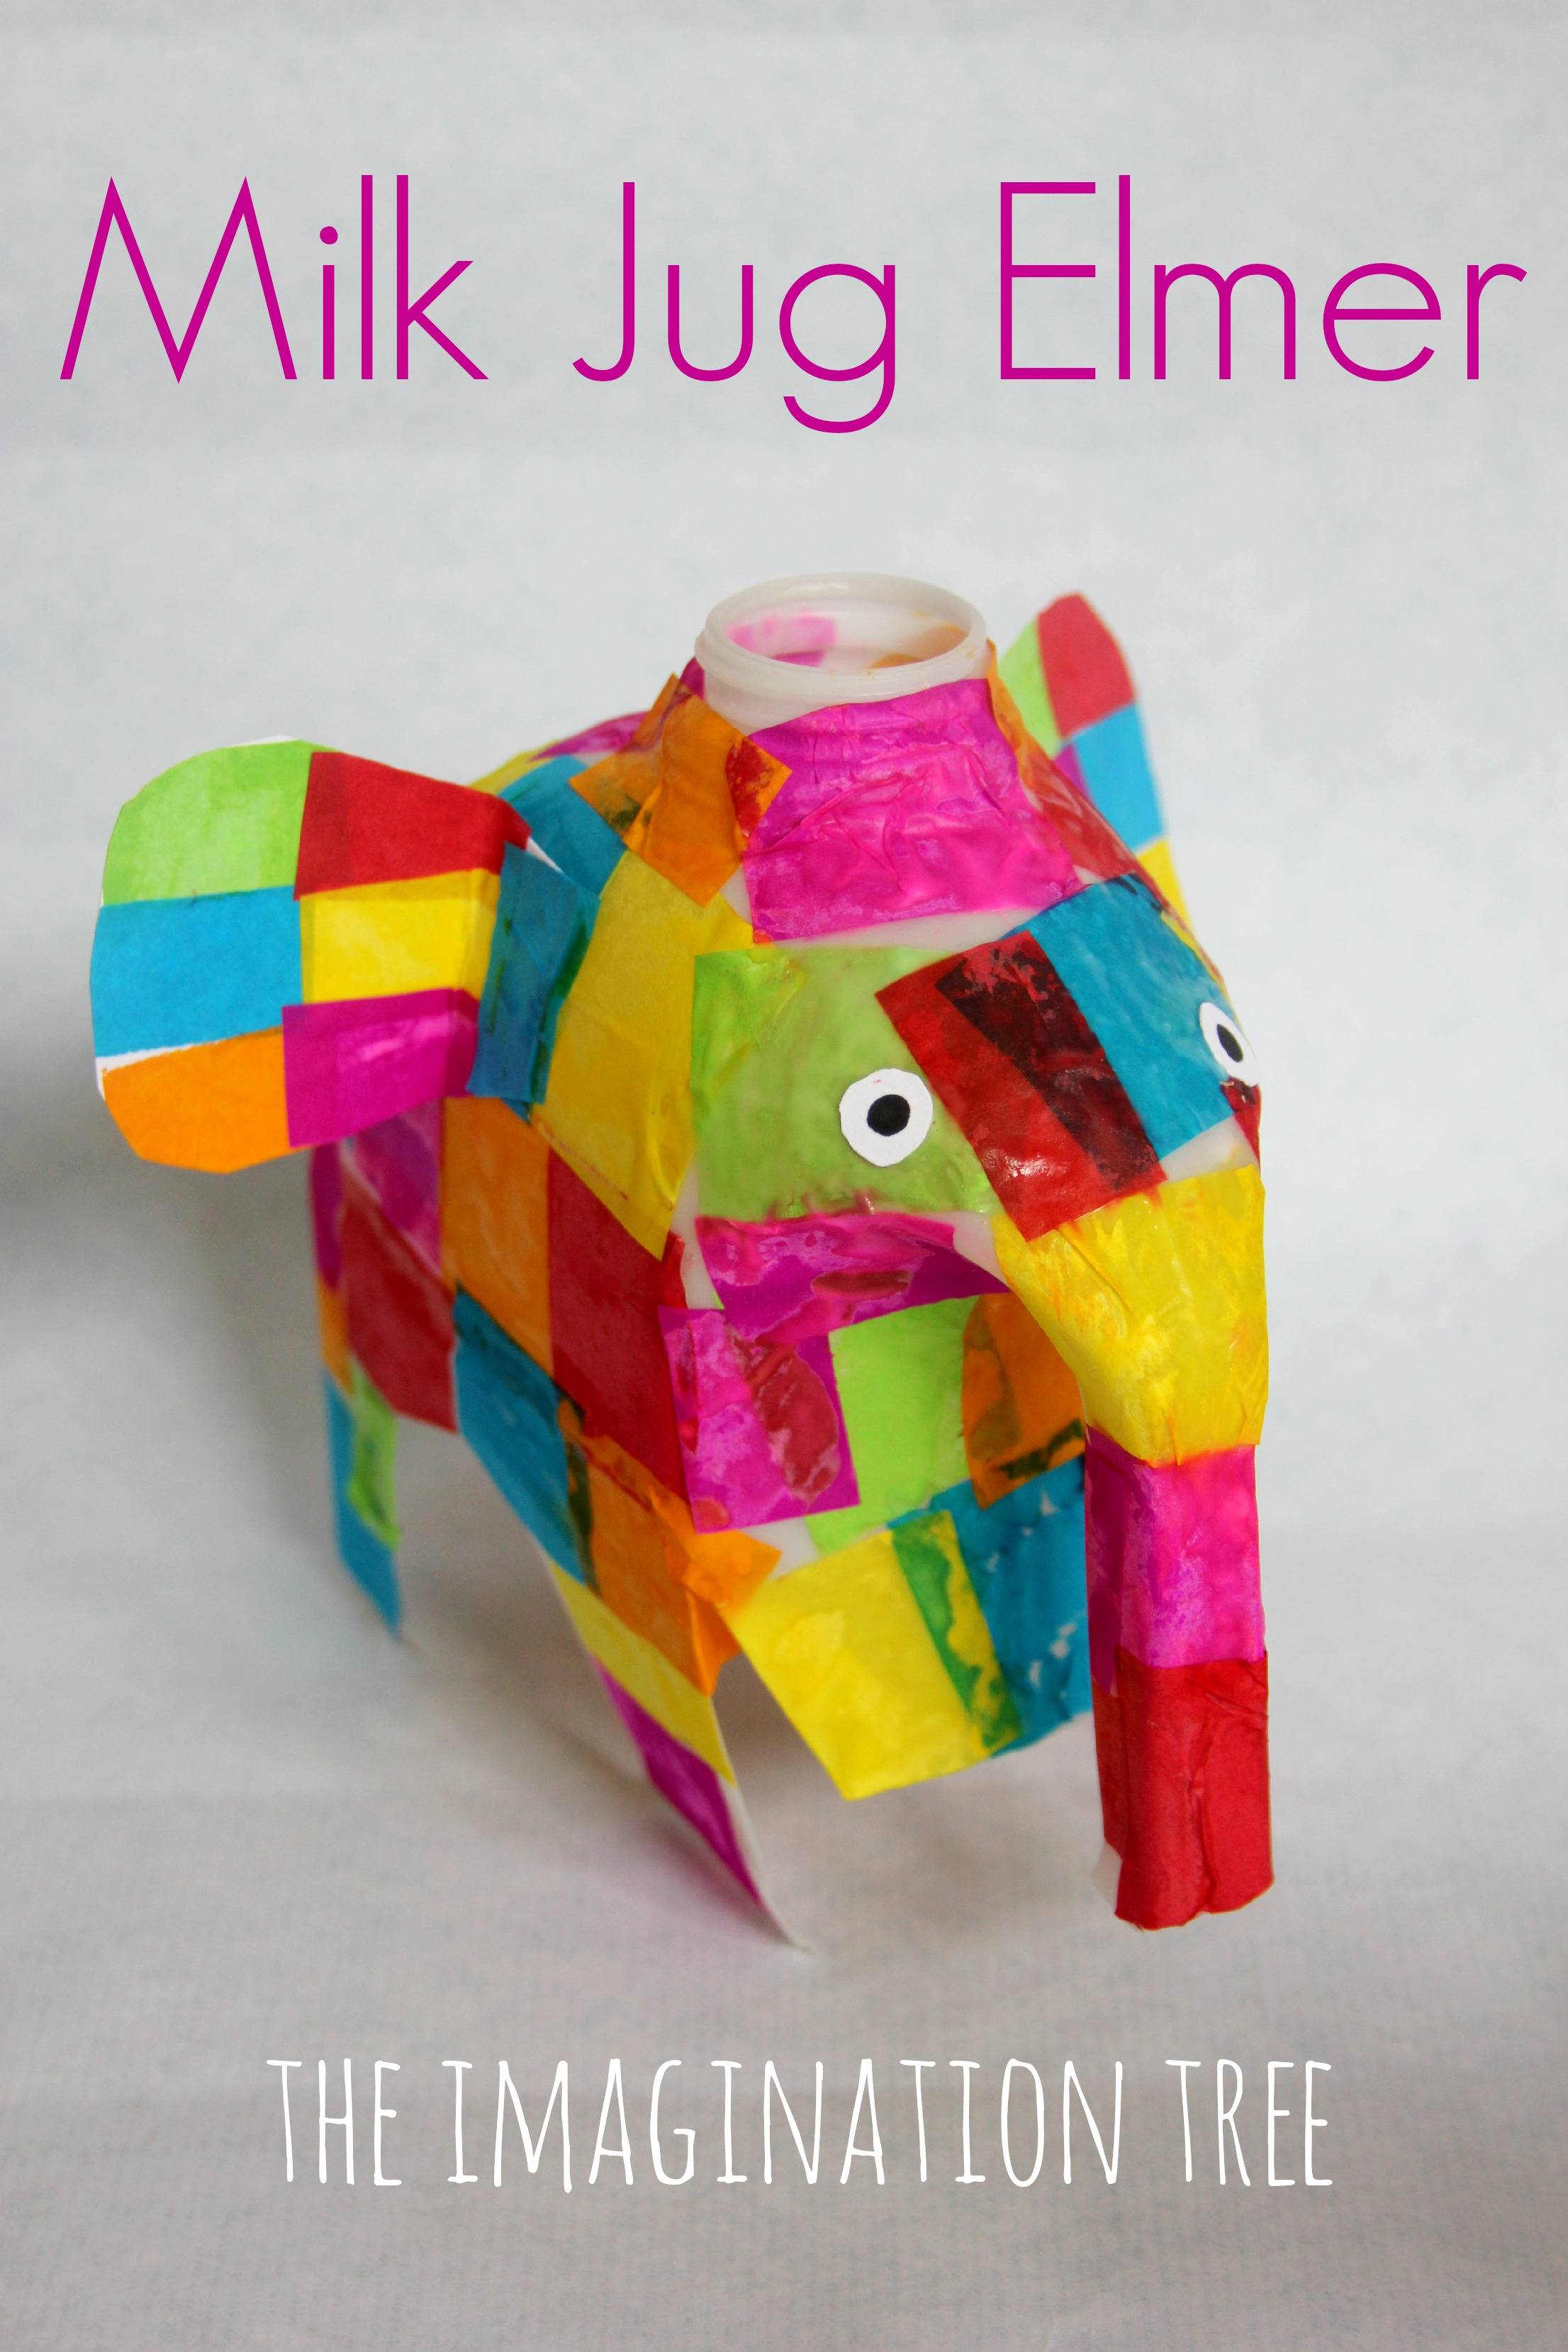 See all our other Arts and Crafts ideas for kids here .